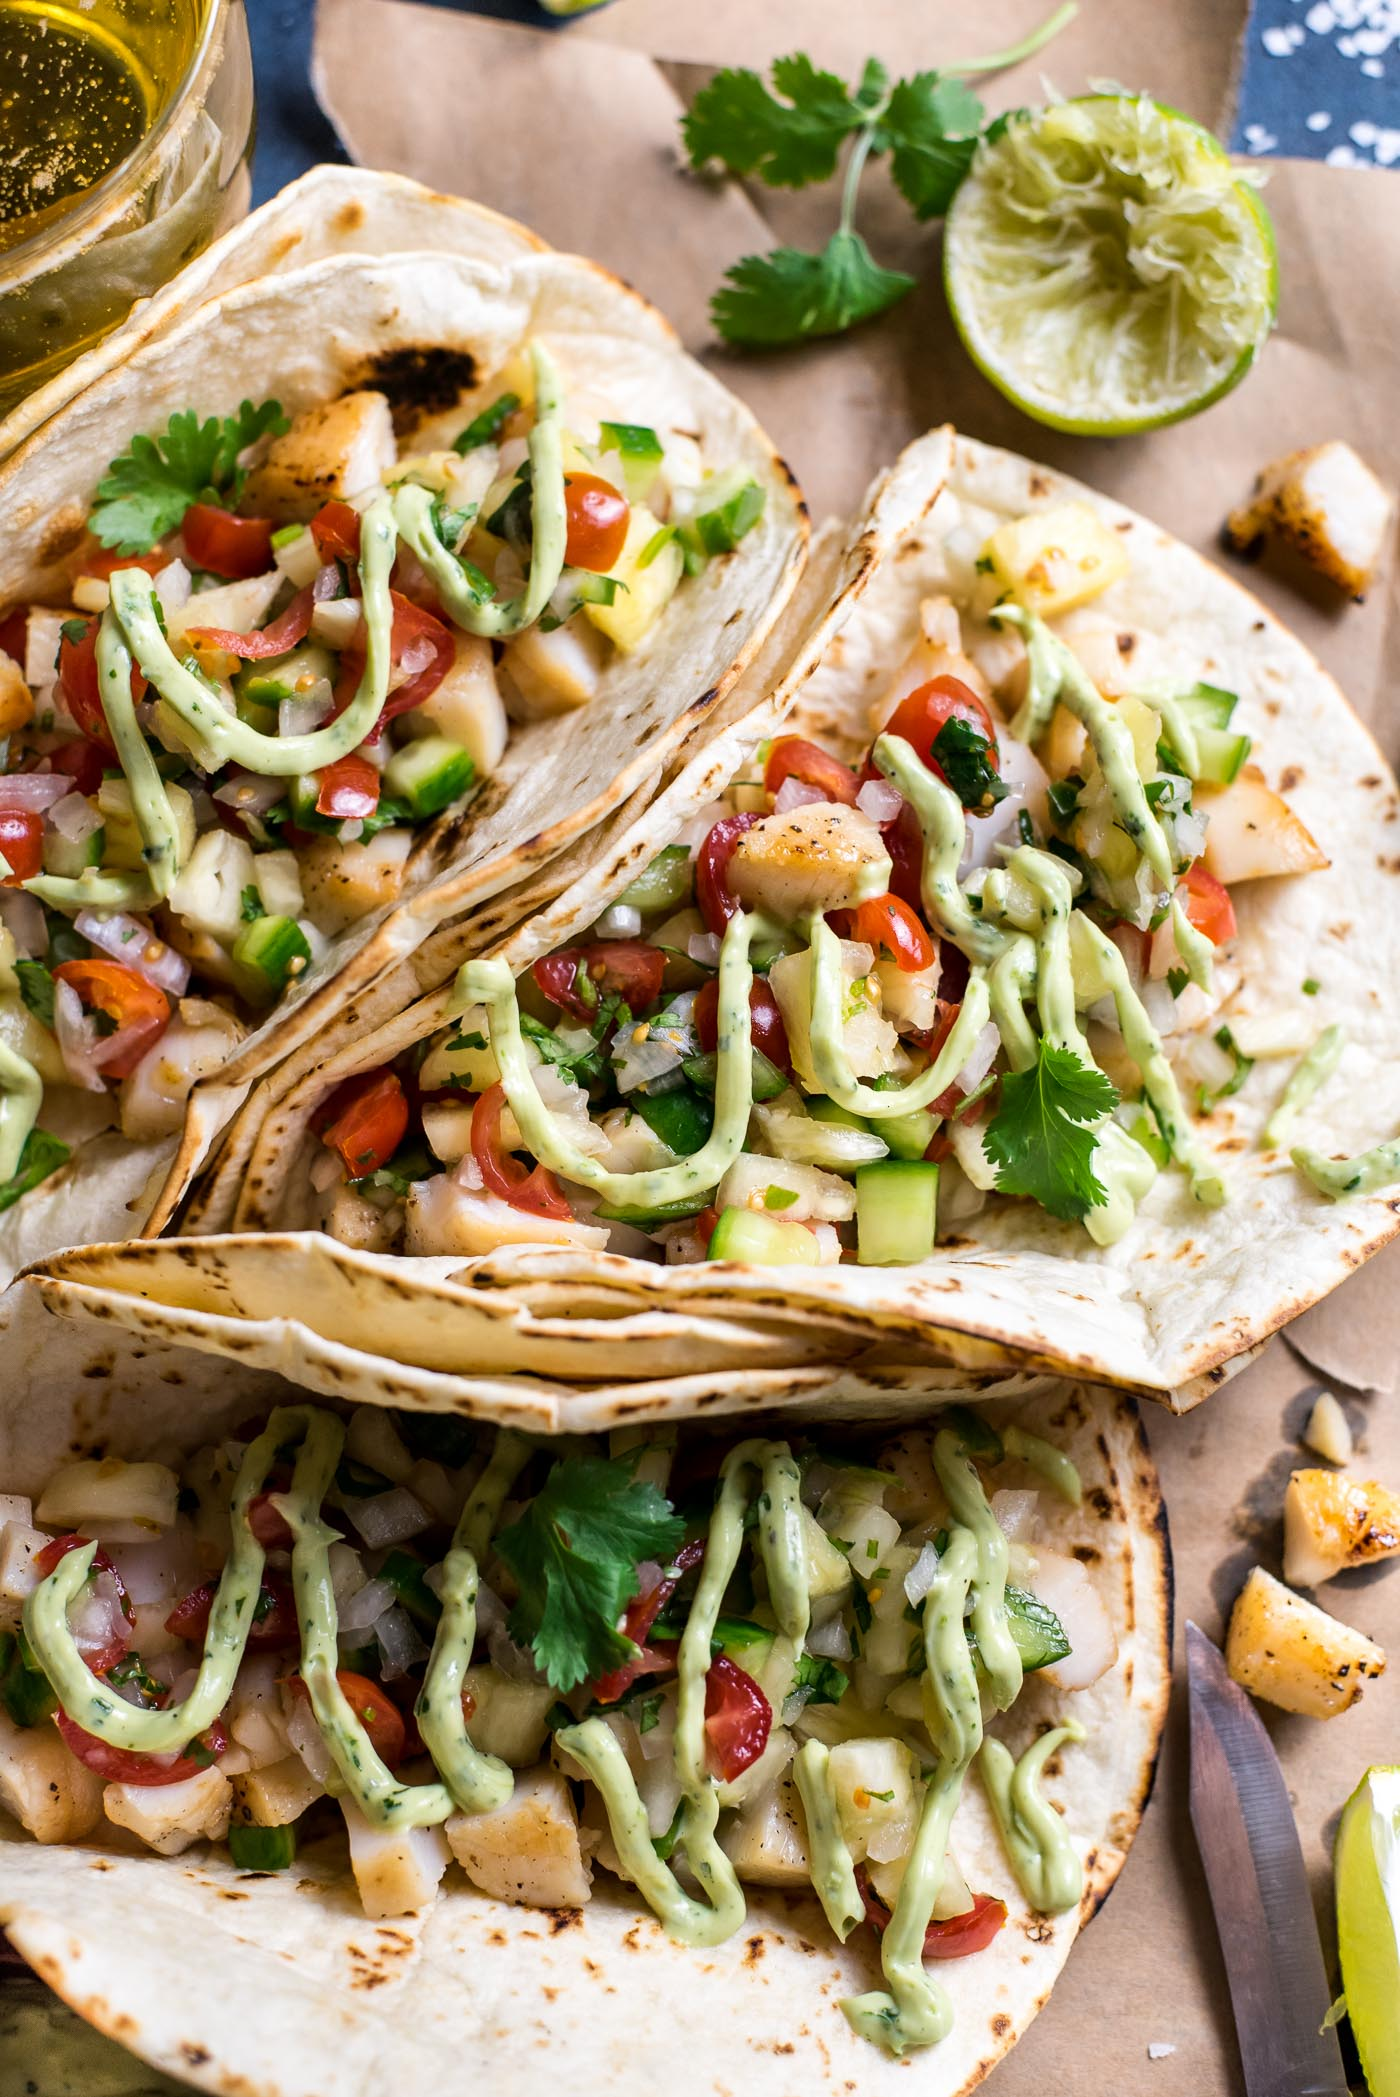 Scallop Tacos with Pineapple Salsa and Creamy Guacamole